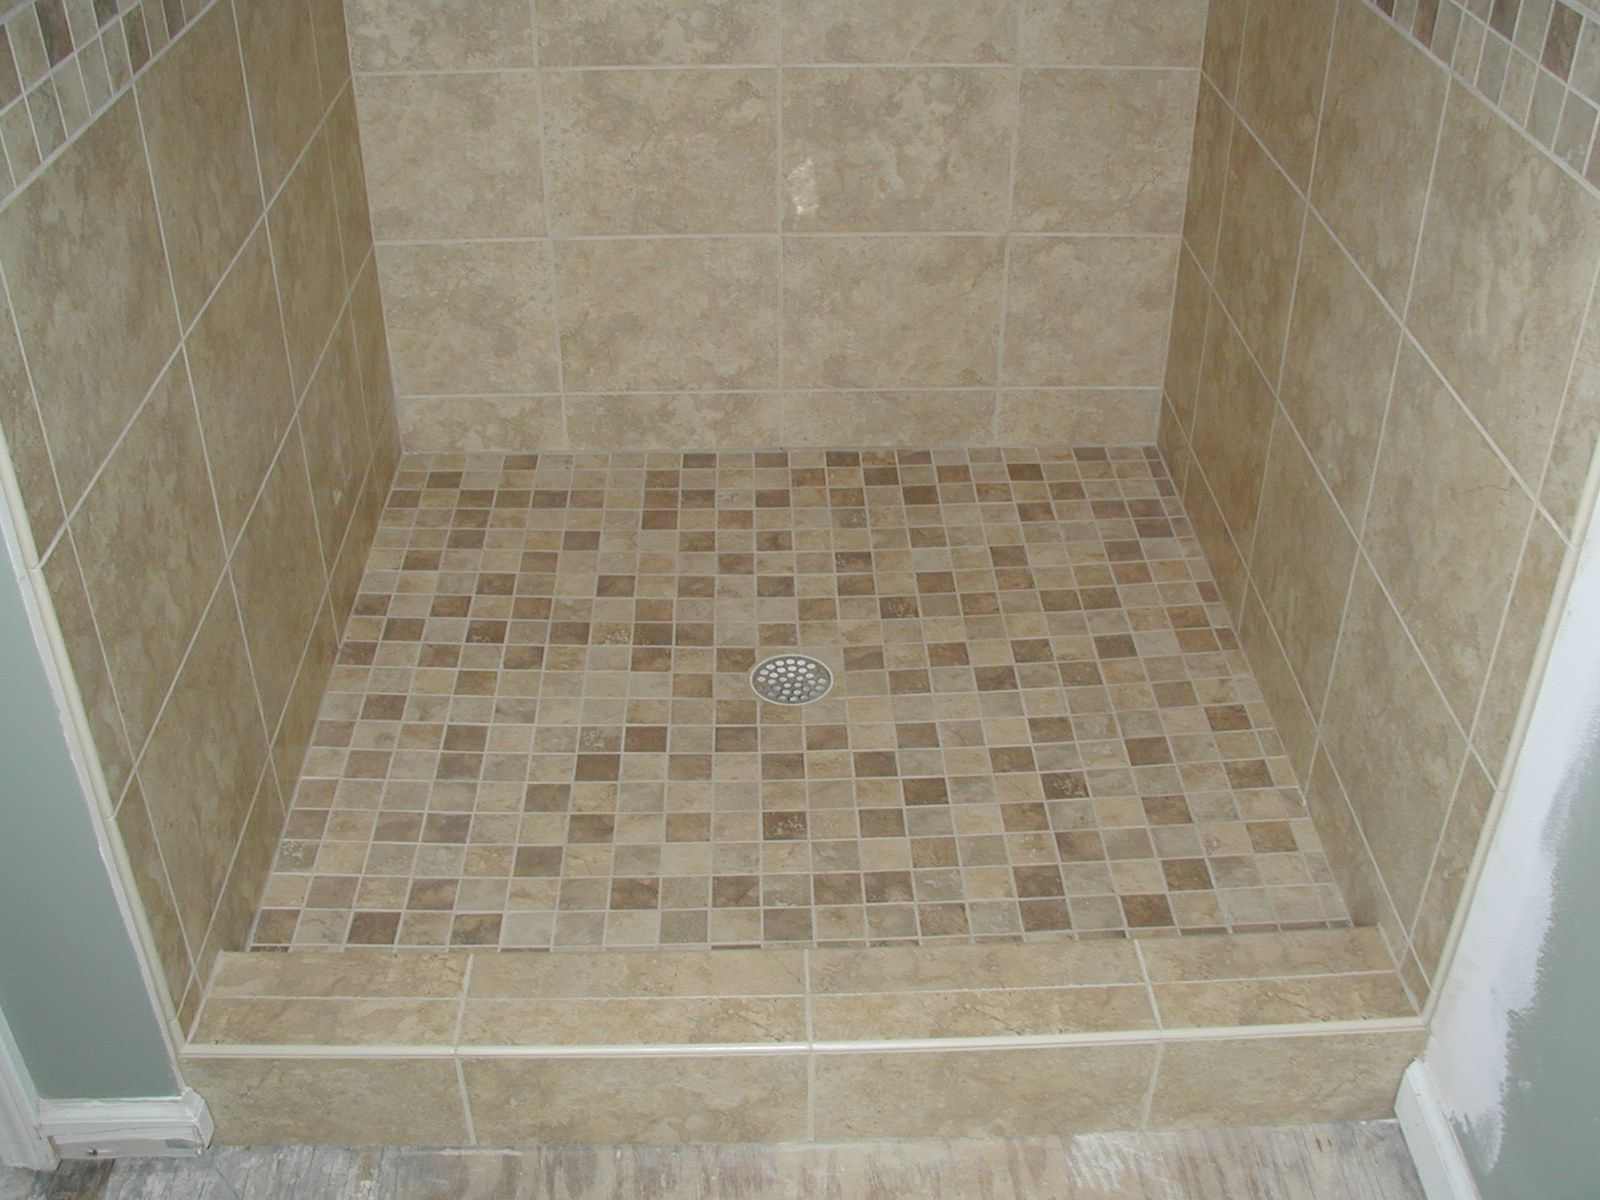 Bathroom tile showers with half wall of glass tiled shower marvelous how to tile a shower floor with river rock and how much does it cost to tile a shower floor dailygadgetfo Image collections